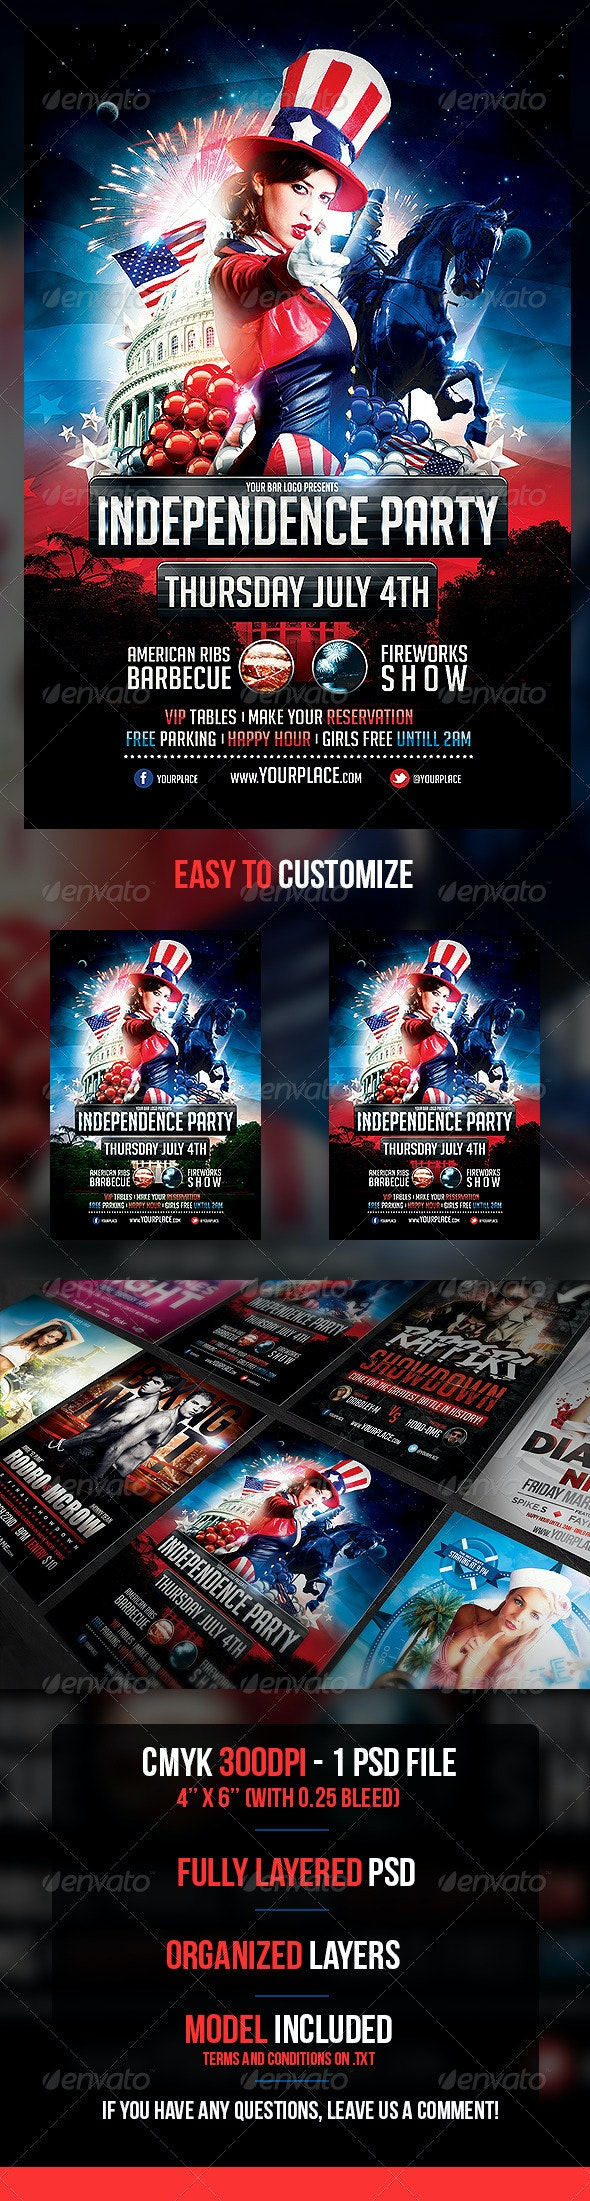 Independence Day Flyer Template - Holidays Events